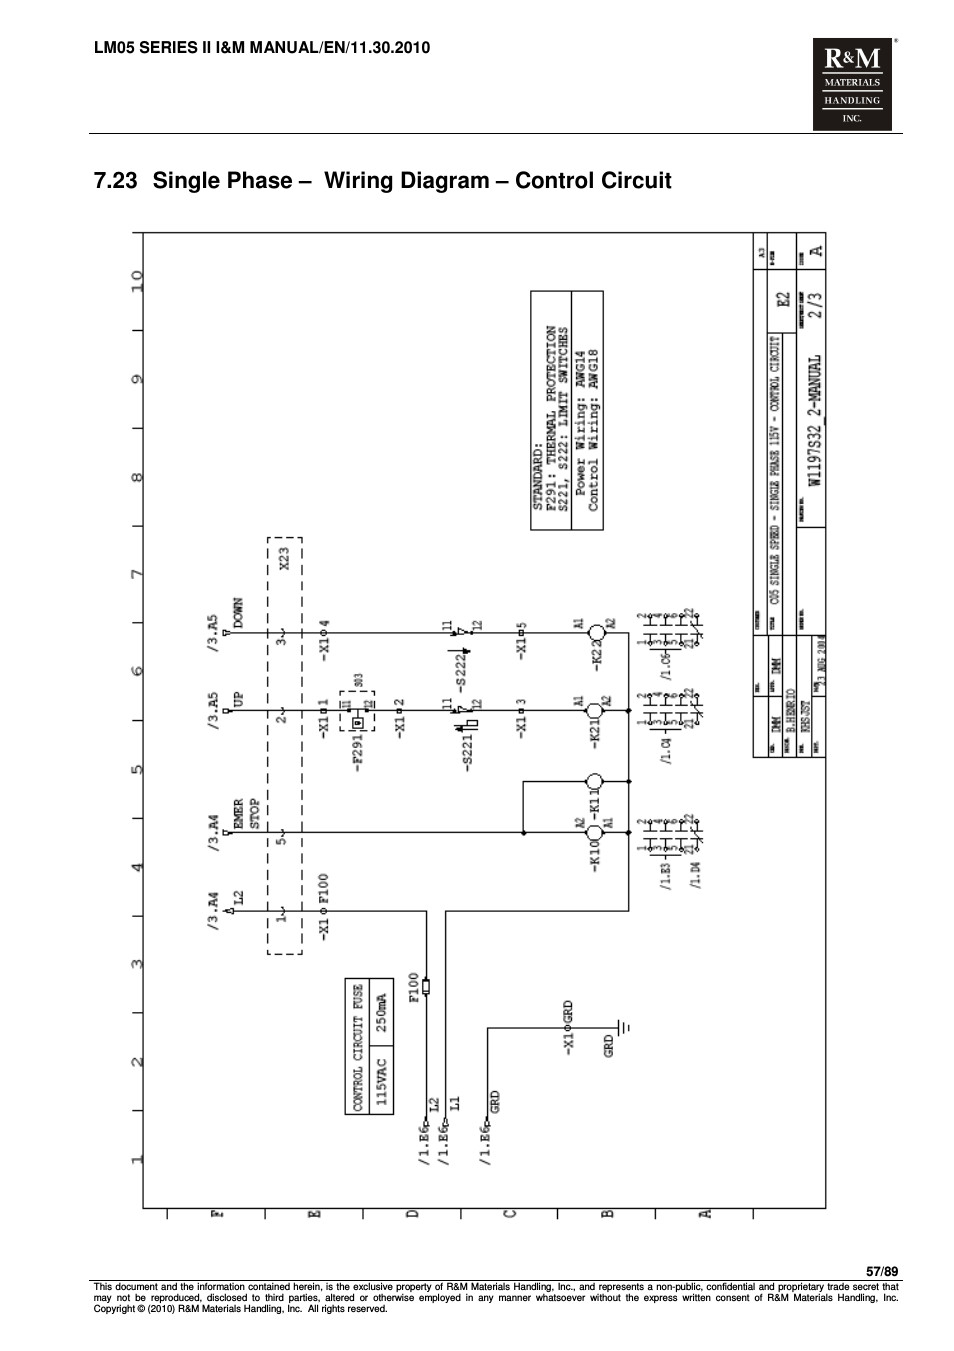 cm lodestar wiring diagram Collection-wiring diagram cm lodestar free image about wiring diagram rh designbits co 20-g